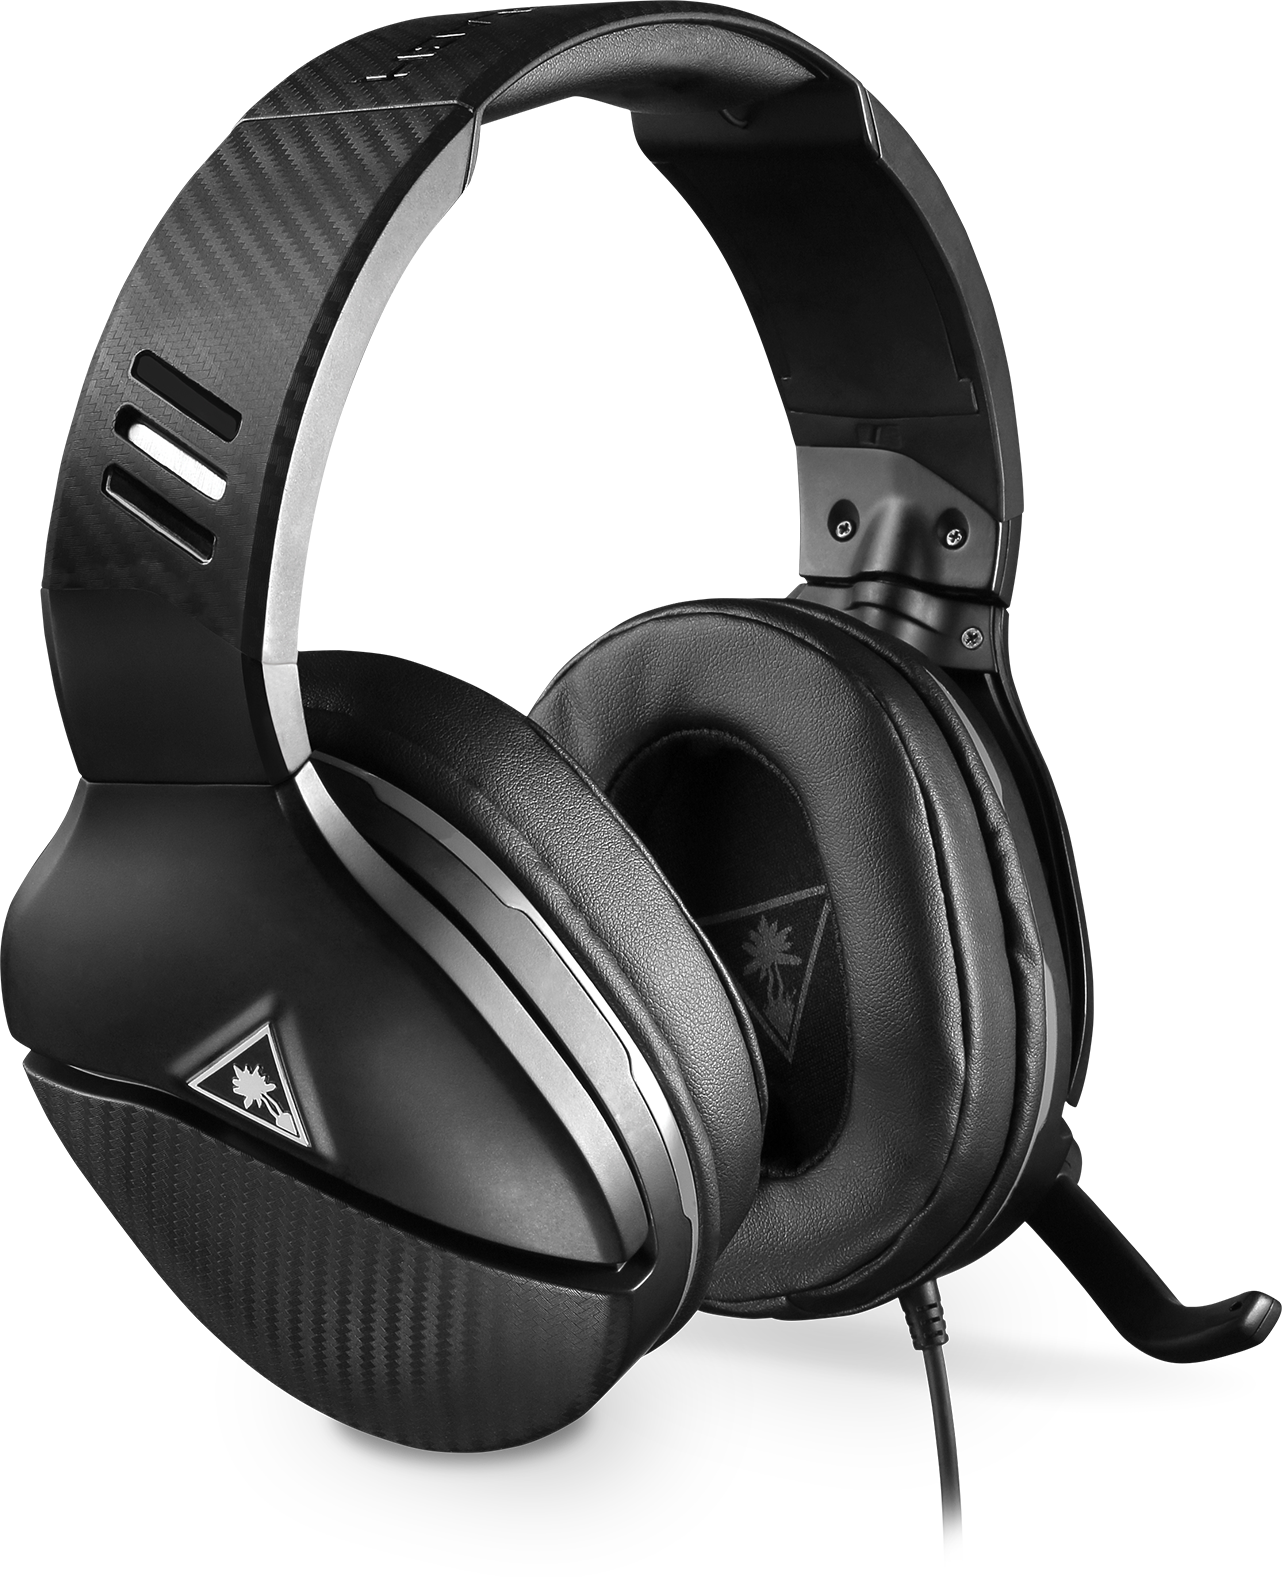 RE2jcSg?ver=d67c - Turtle Beach Recon 200 Gaming Headset for Xbox One (Black)